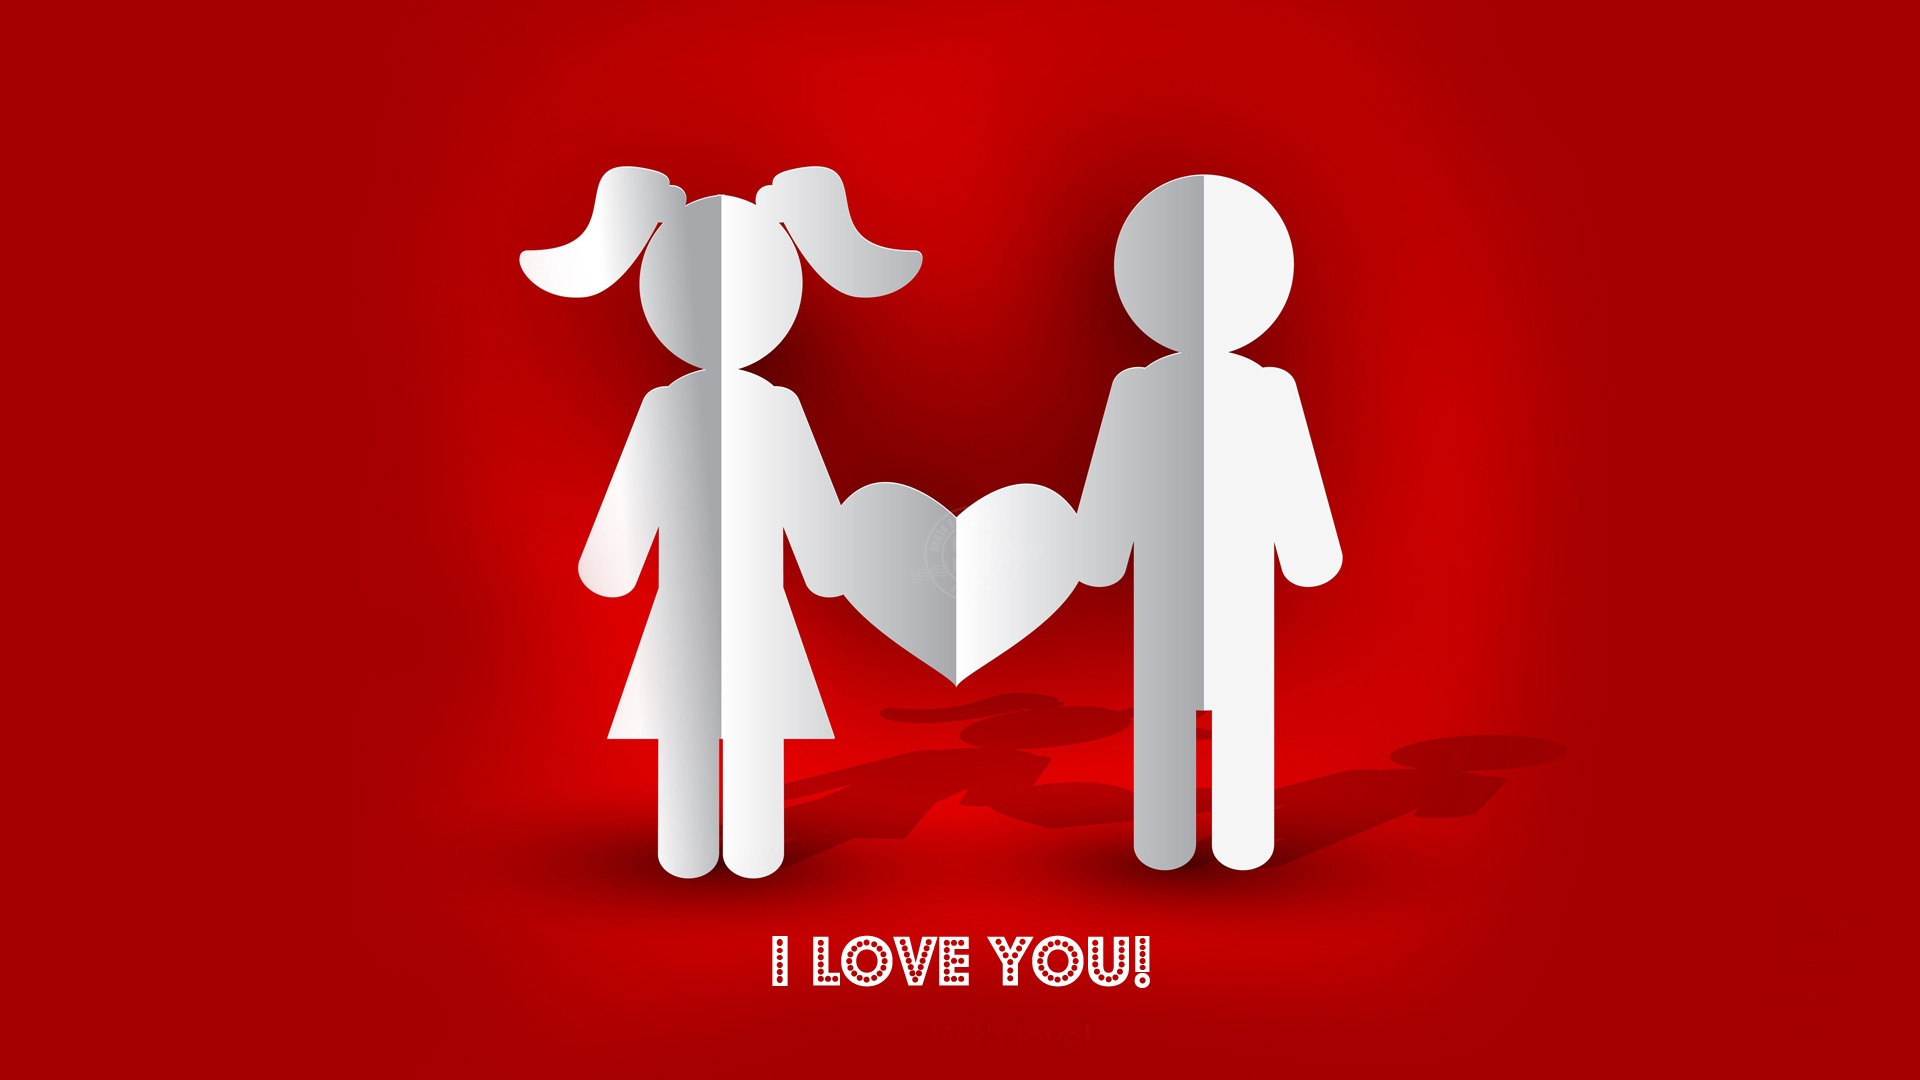 Wallpaper I Love You Photo : I Love You Heart Wallpaper